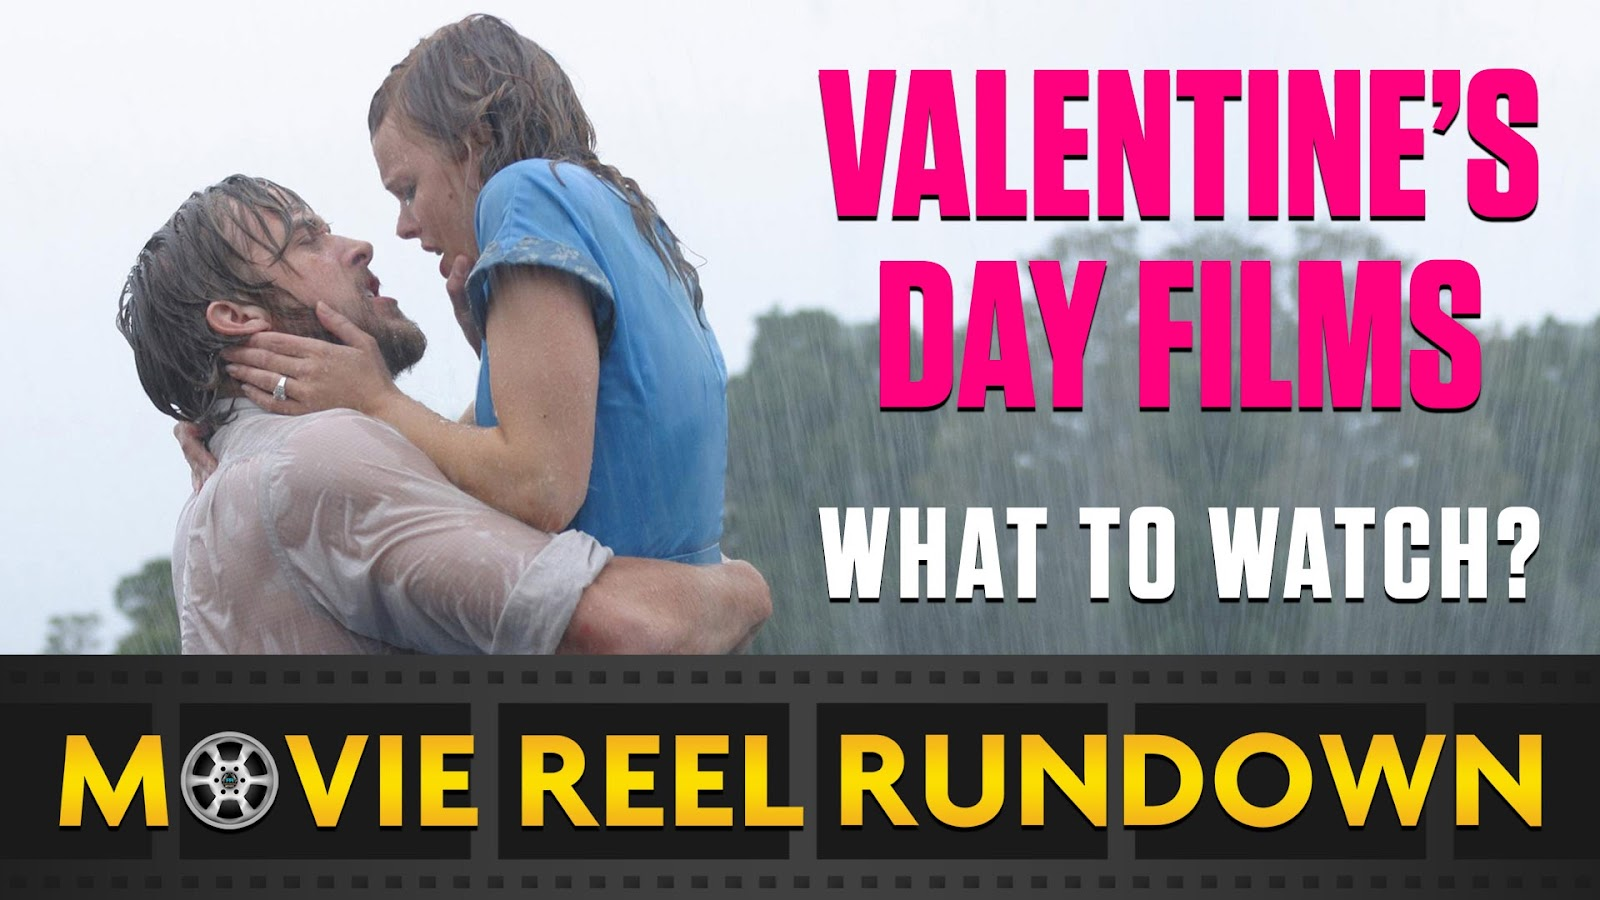 movie reel rundown Best Valentine's Day Films podcast